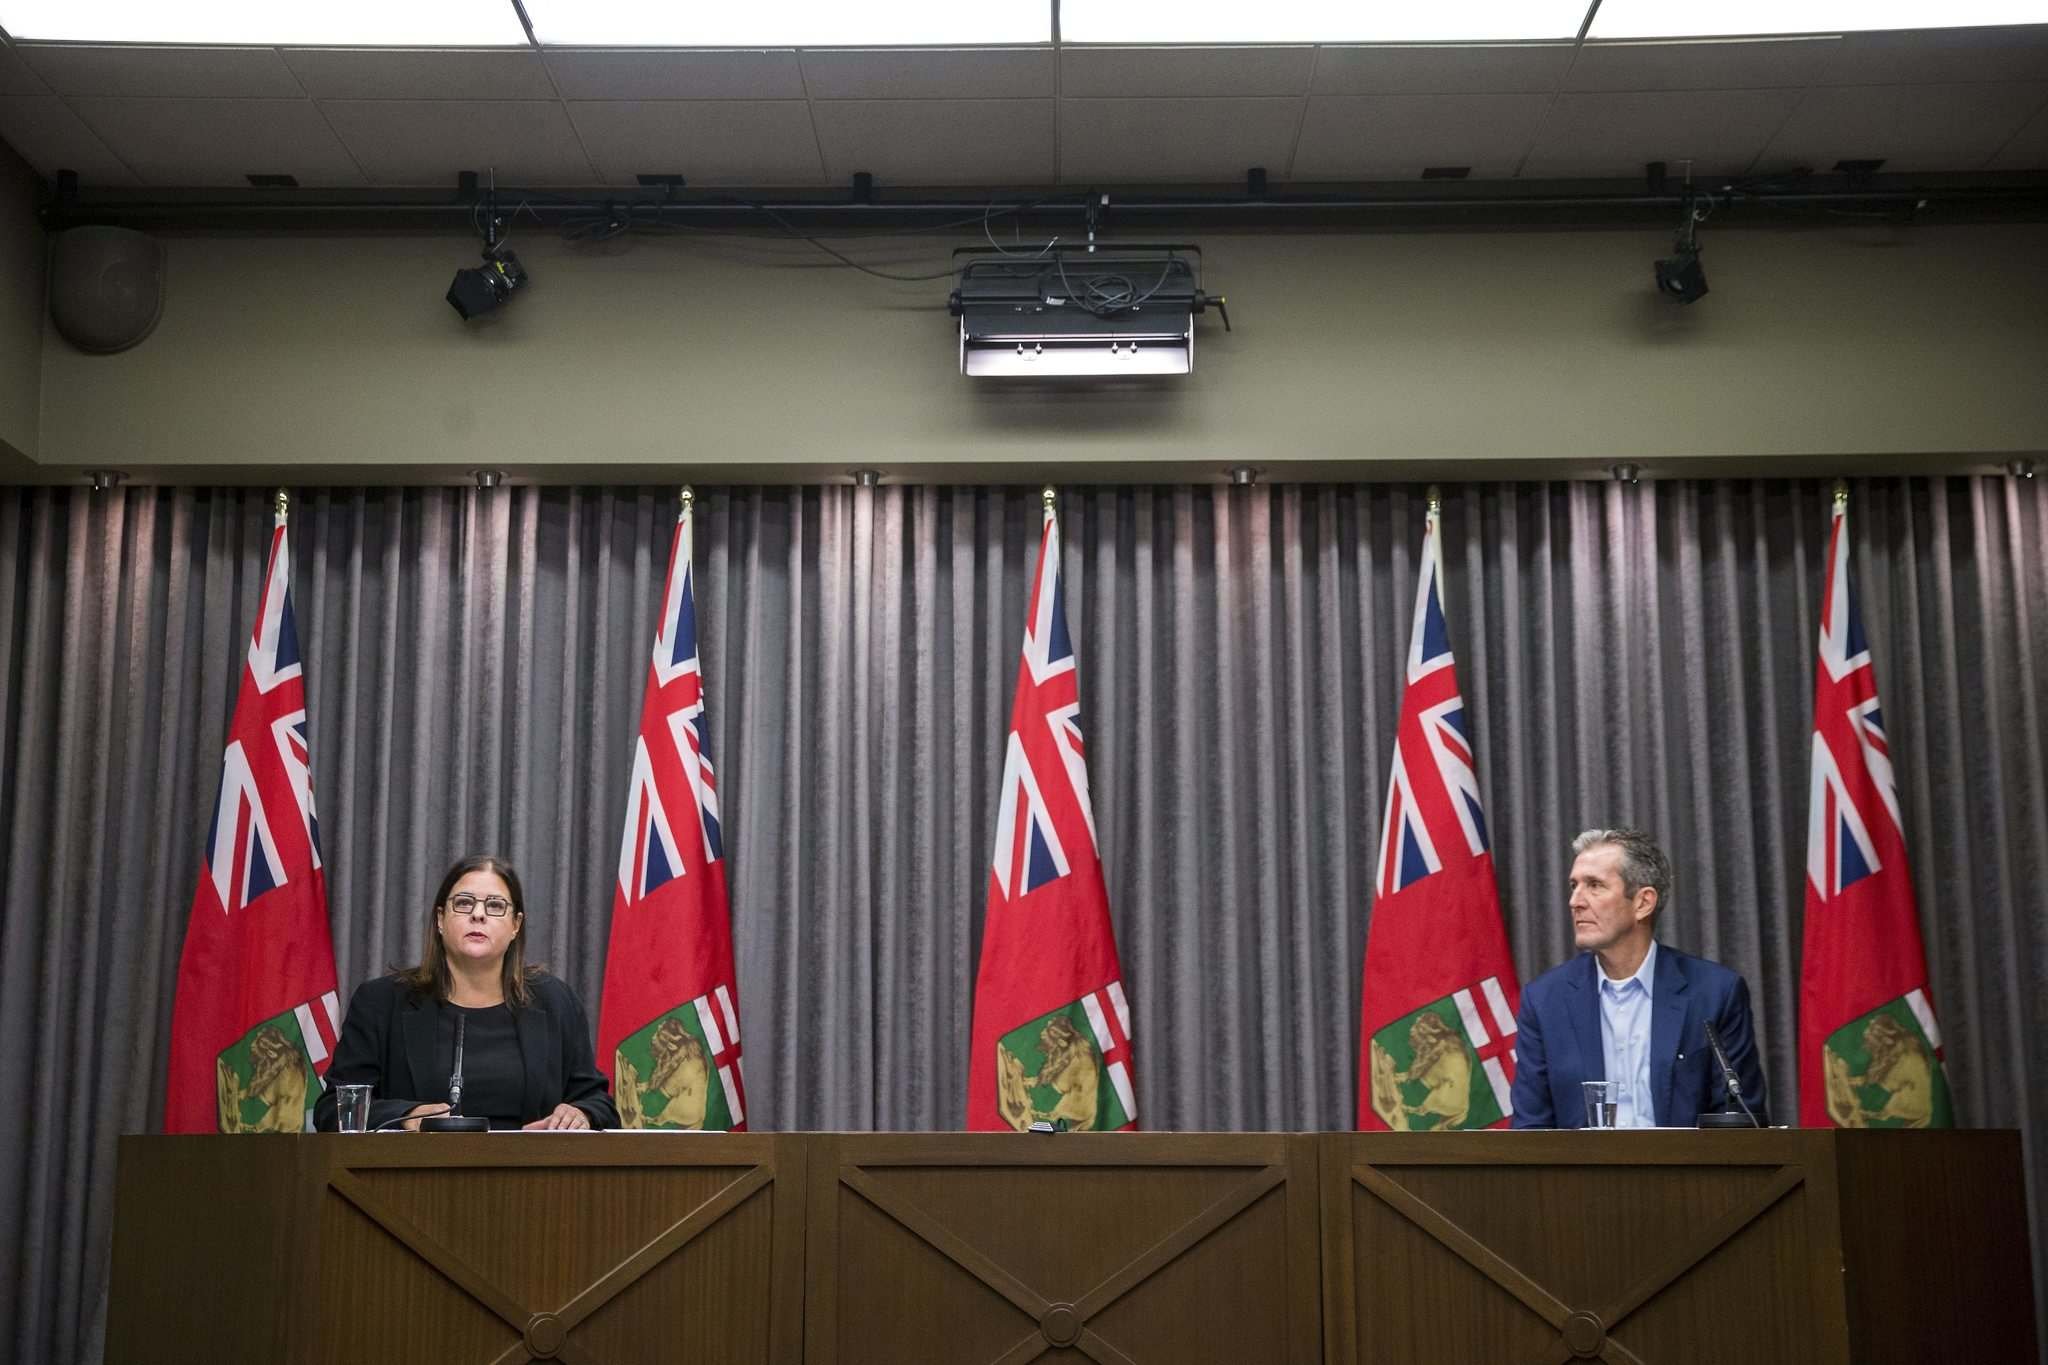 MIKAELA MACKENZIE / WINNIPEG FREE PRESS</p><p>Families Minister Heather Stefanson speaks about child care after Premier Brian Pallister announced a state of emergency in Manitoba on March 20.</p>